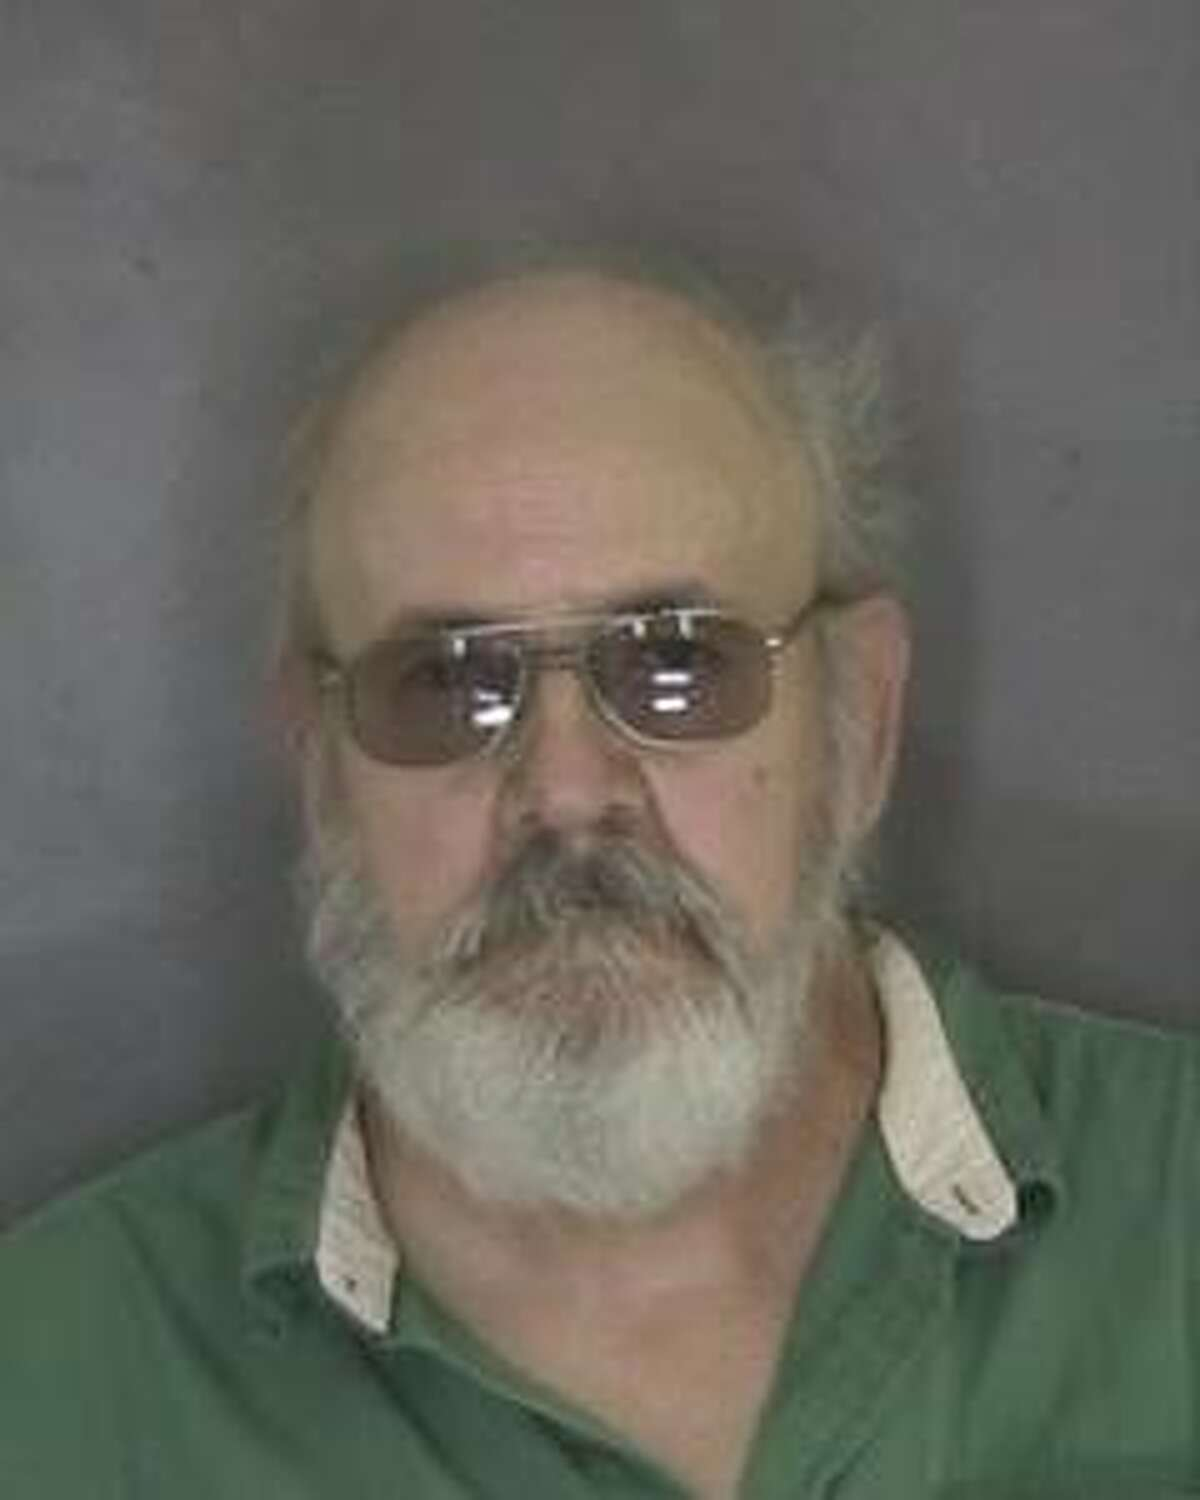 Level 3 Sex Offender Francis S. Germaine was arrested Tuesday for working at Magic Forest amusement park without making the required law enforcement notification. Germaine, 65, of Warrensburg, is convicted of attempted rape. (Warren County Sheriff's Office)